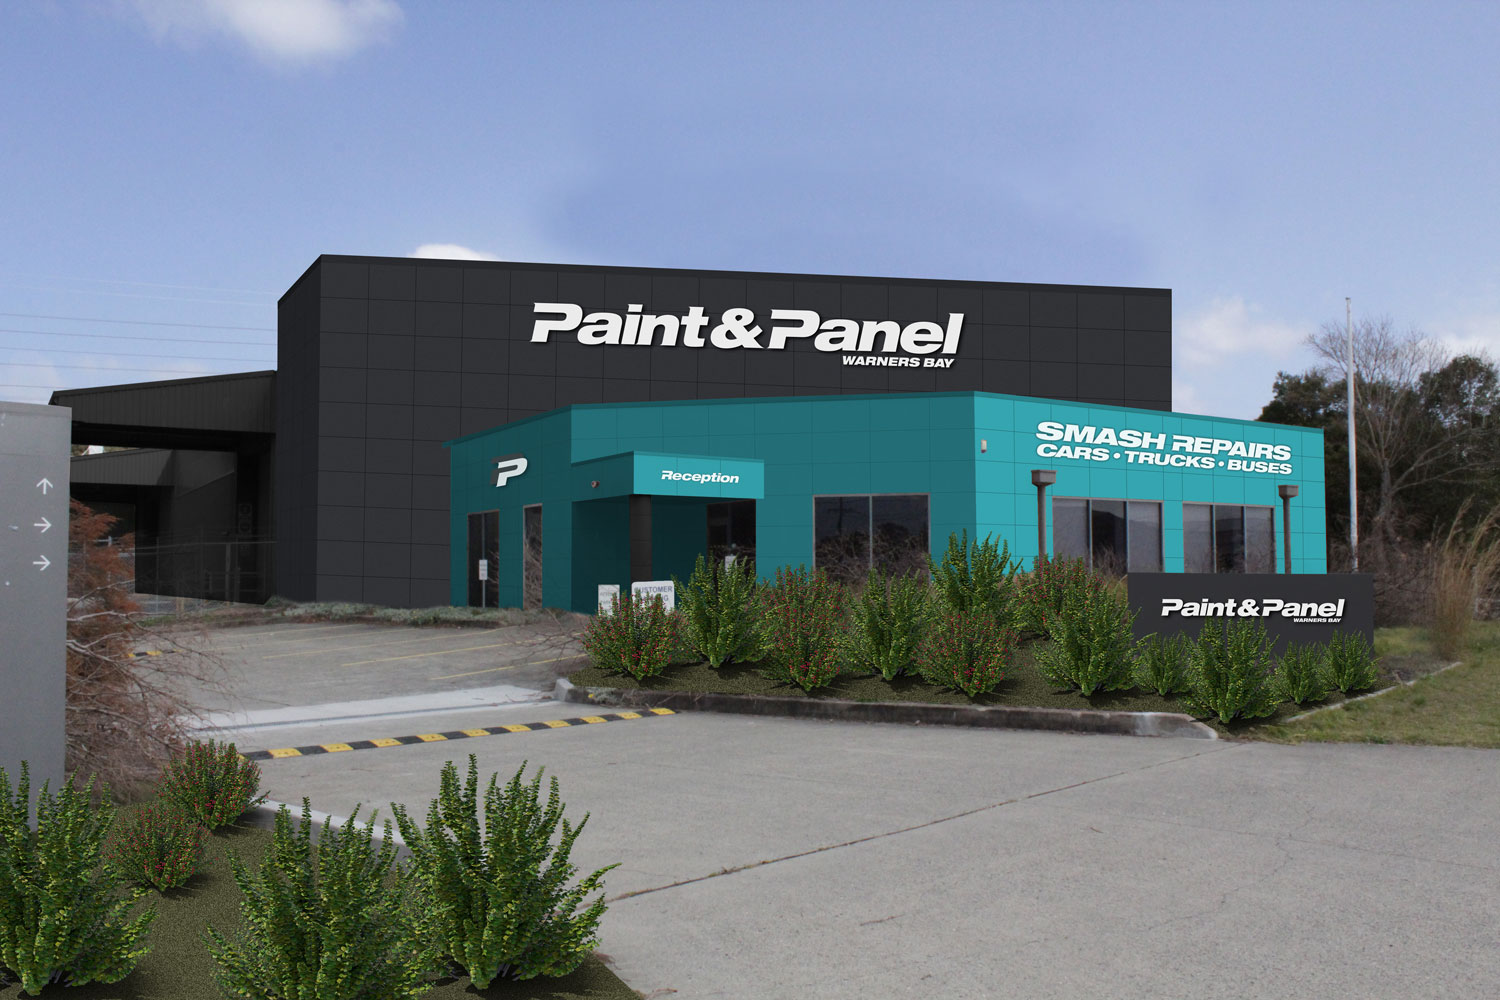 Warners Bay Paint & Panel Building Signage After